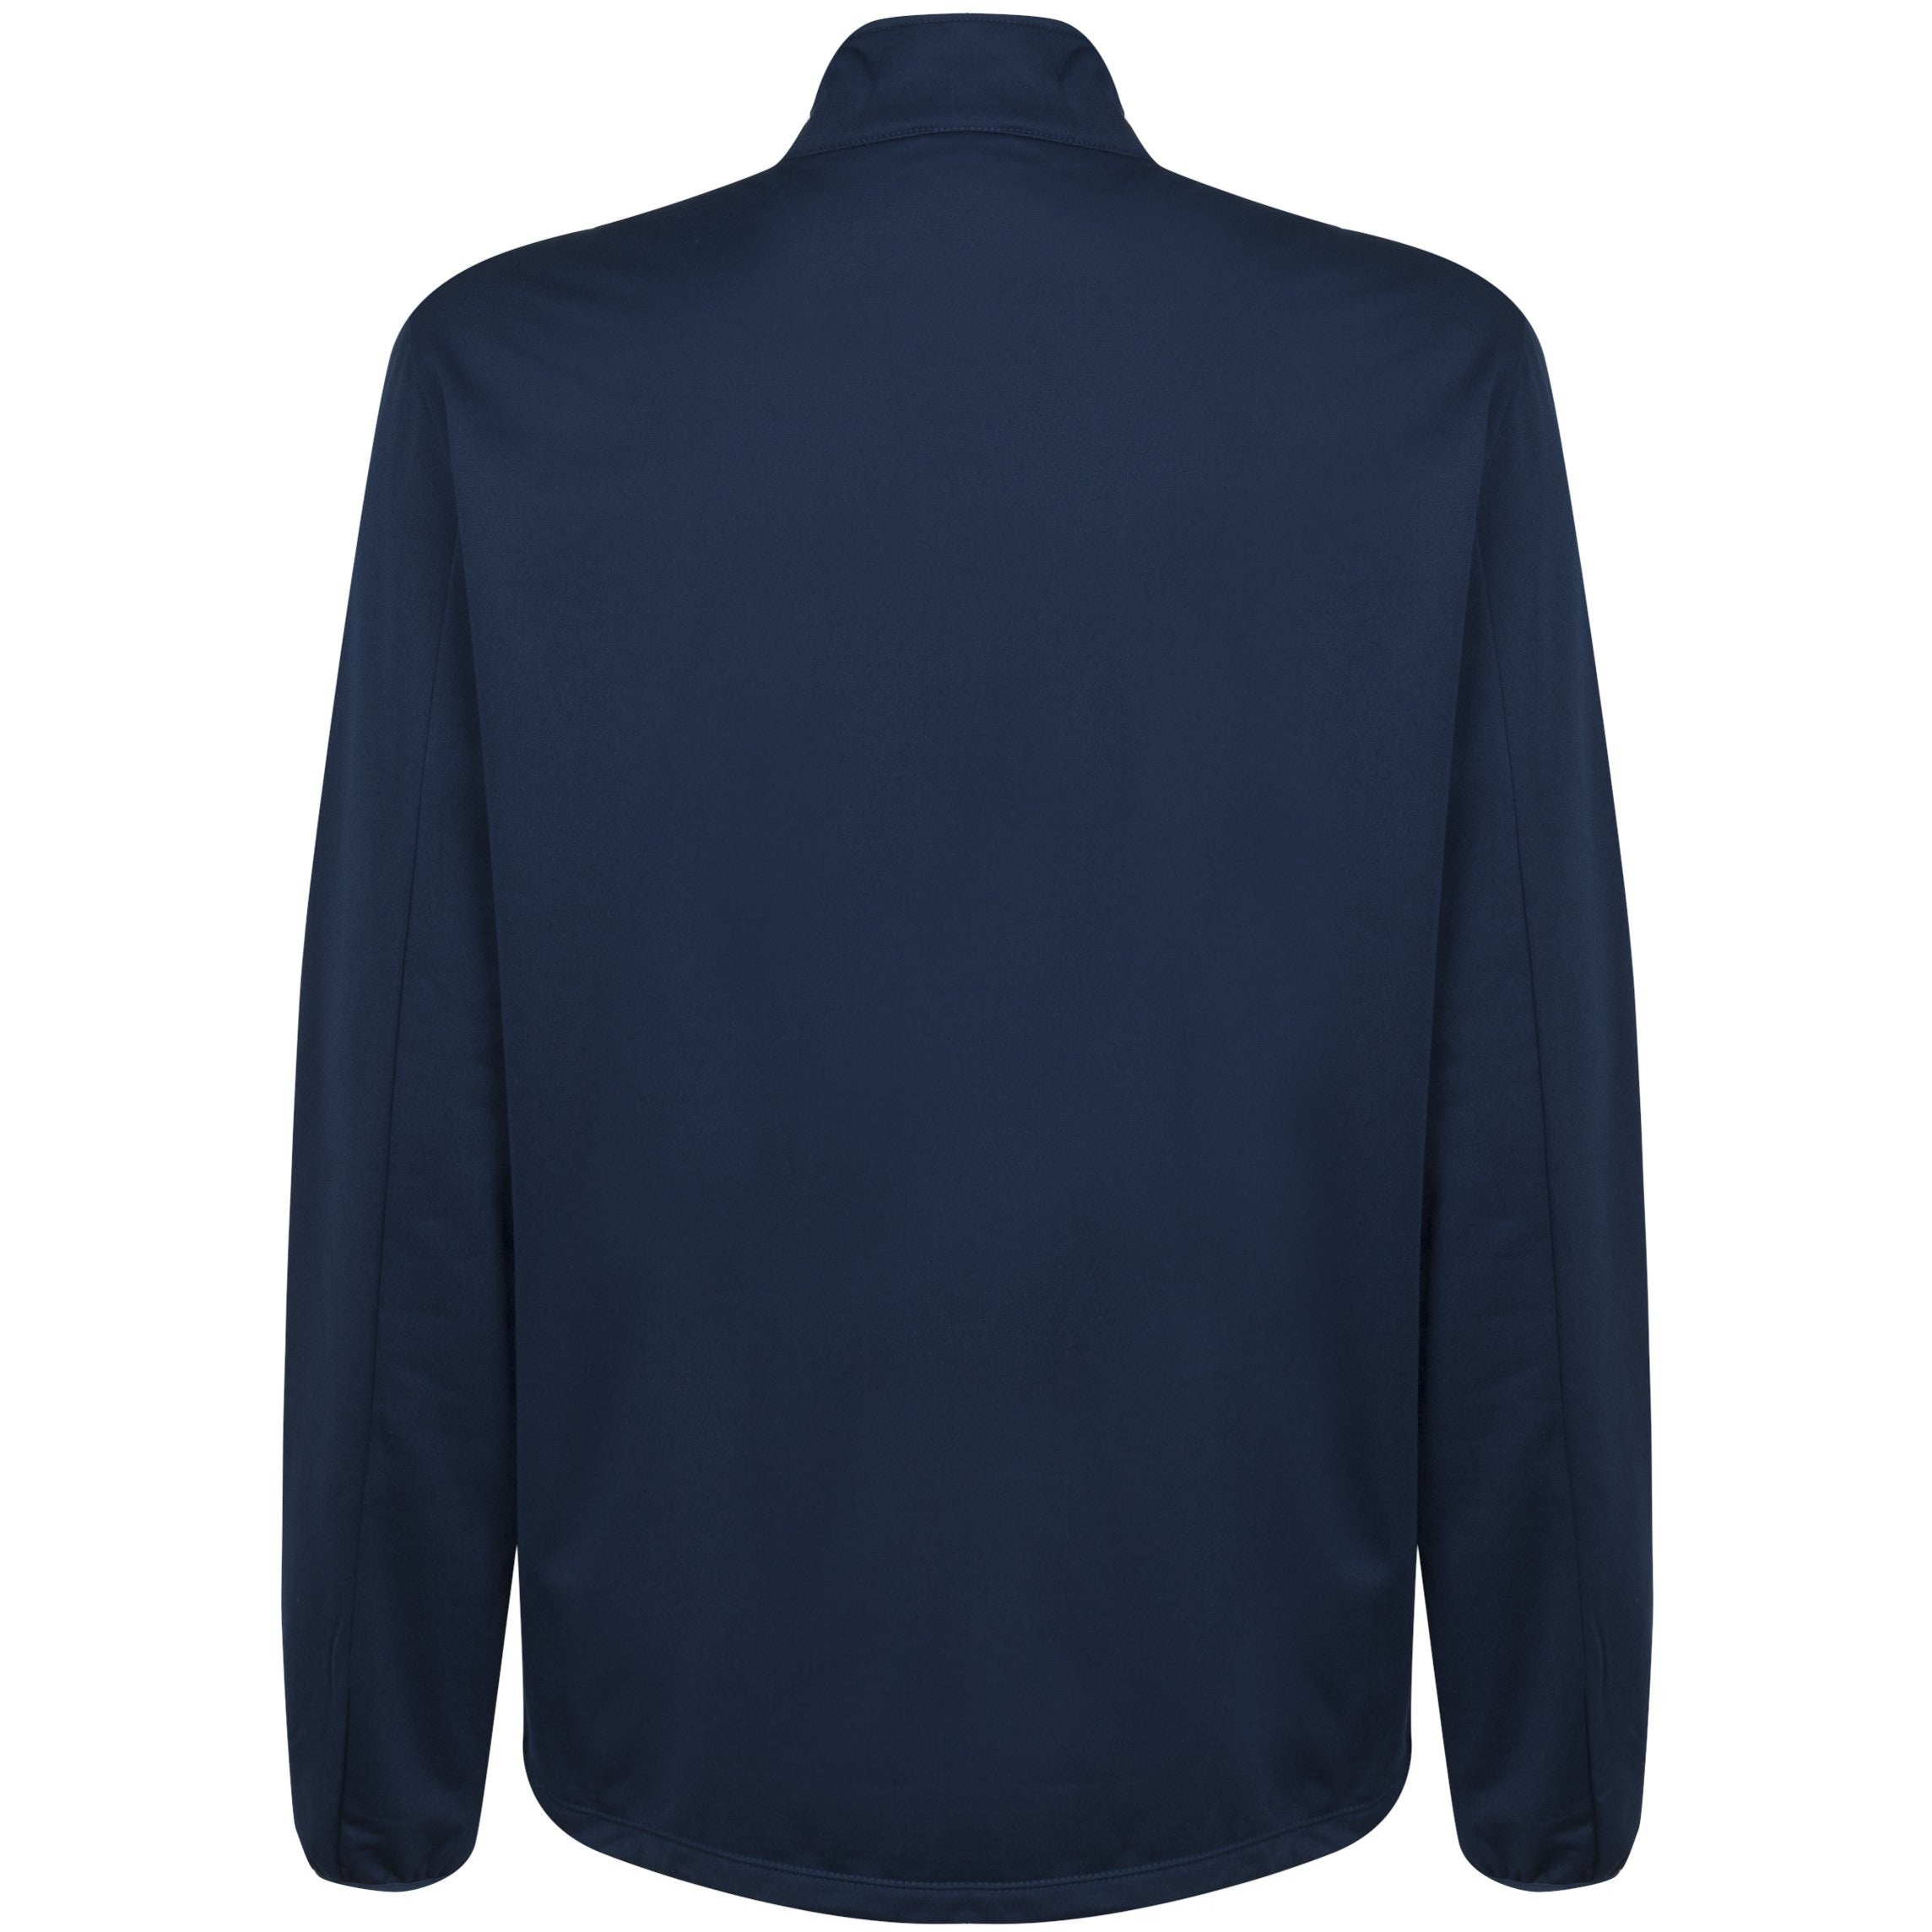 20/21 1/4 Zip Top Adult